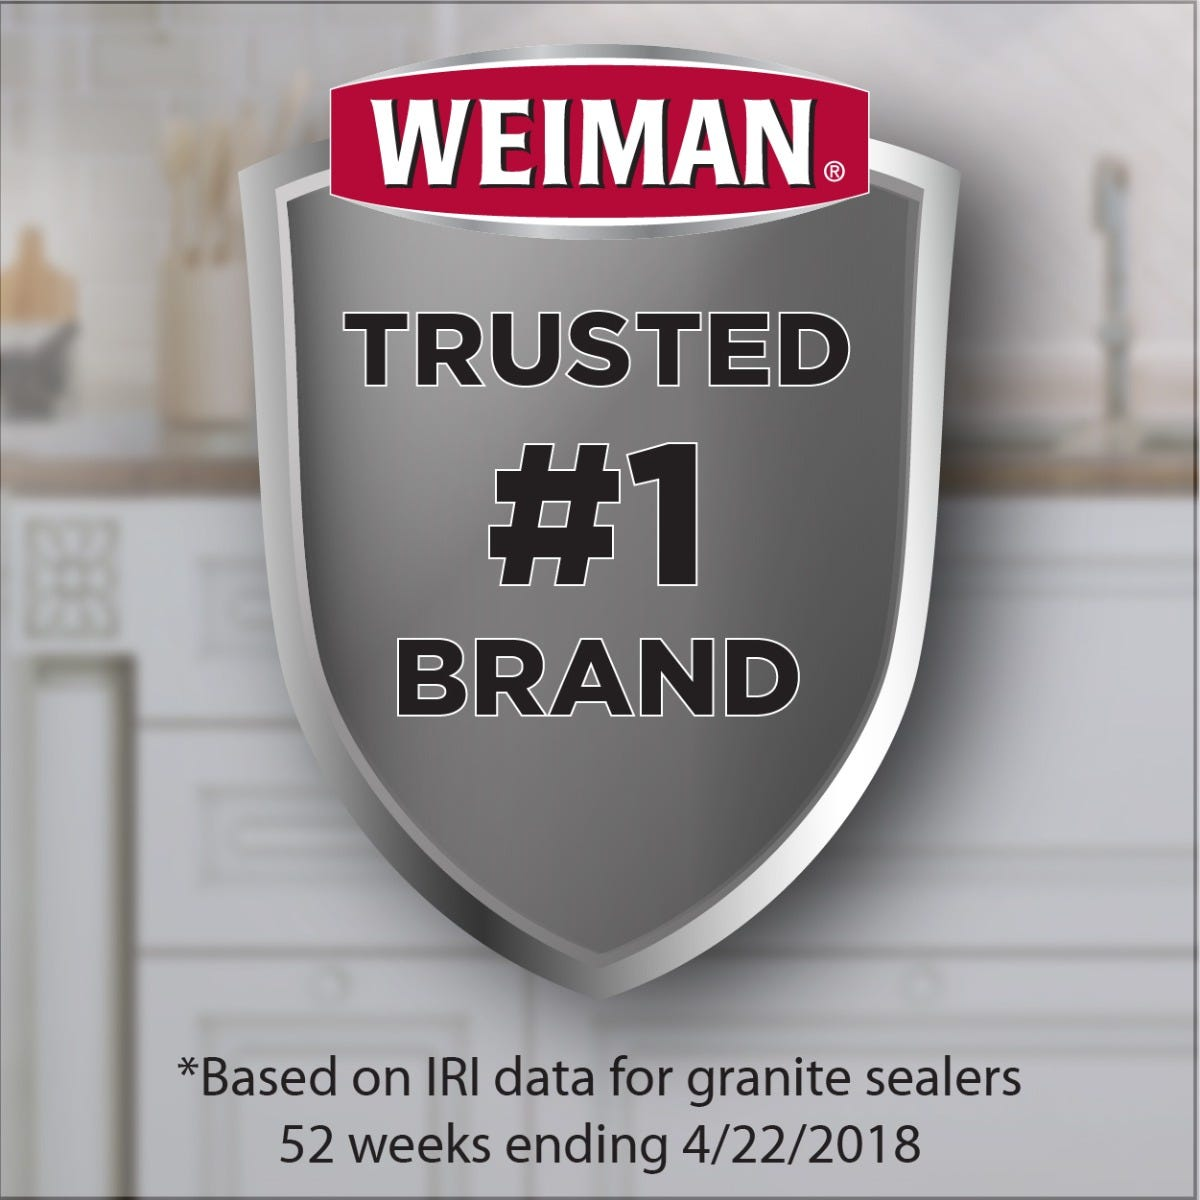 Weiman is number one granite brand